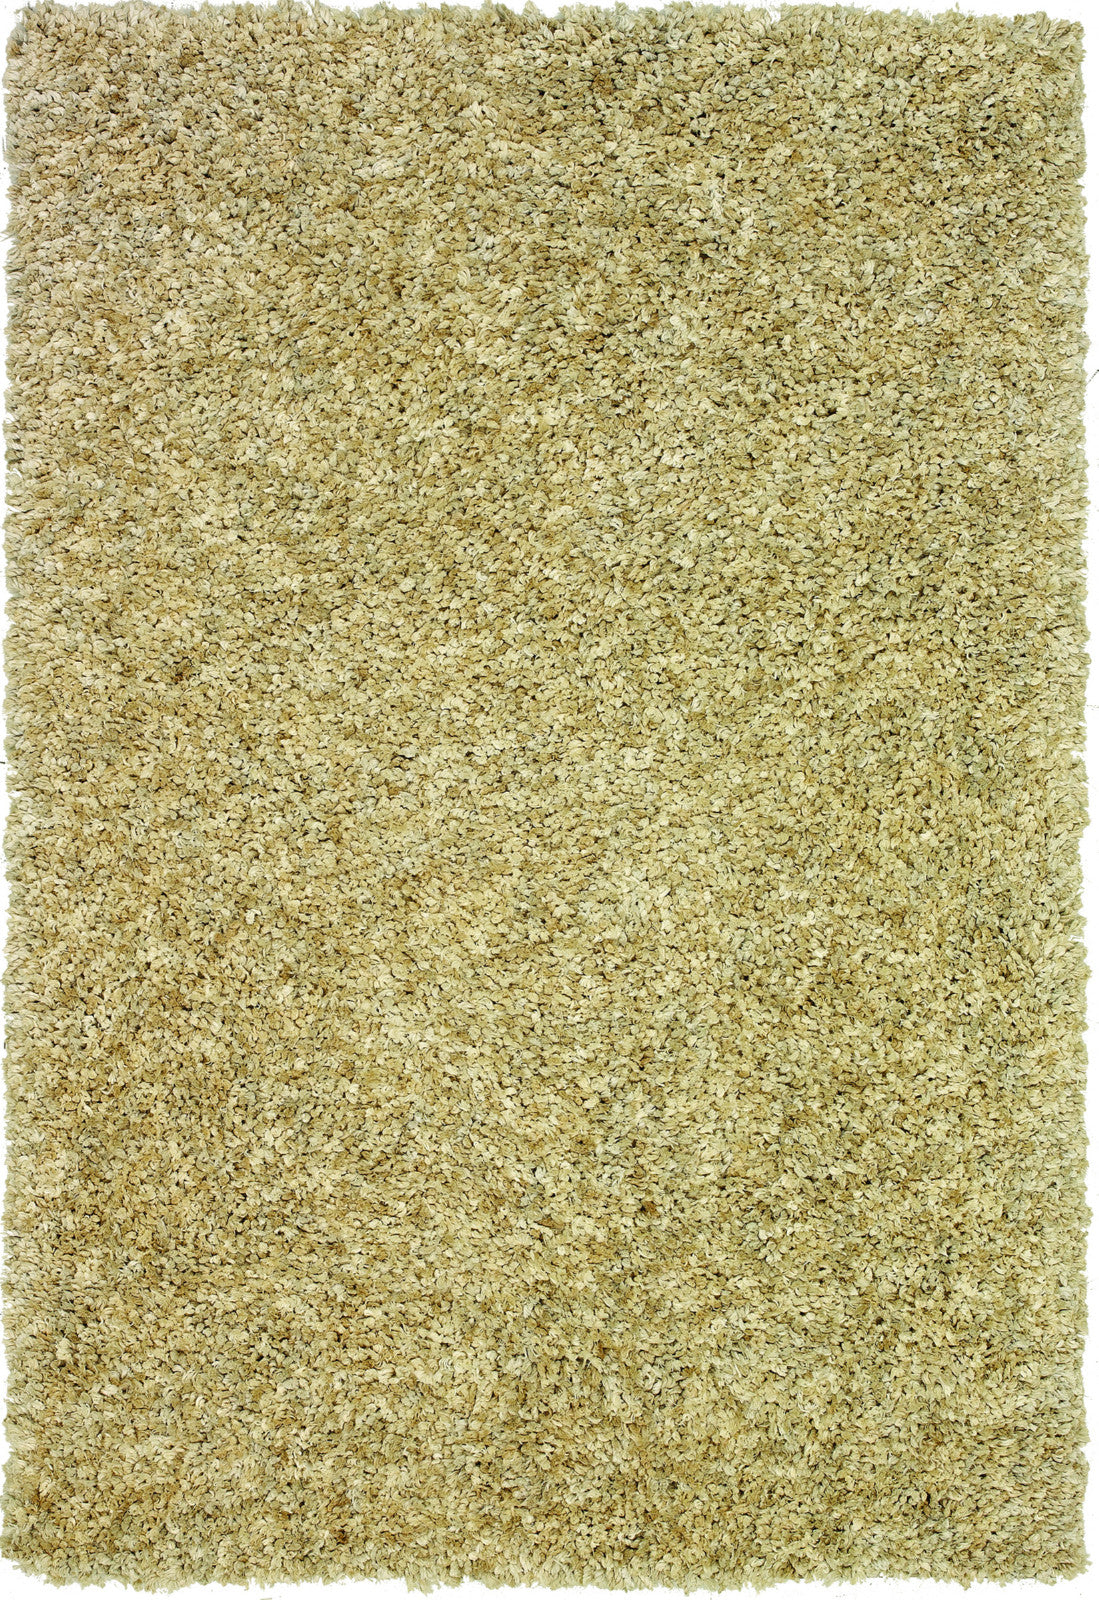 Dalyn Utopia UT100 Sand Area Rug main image